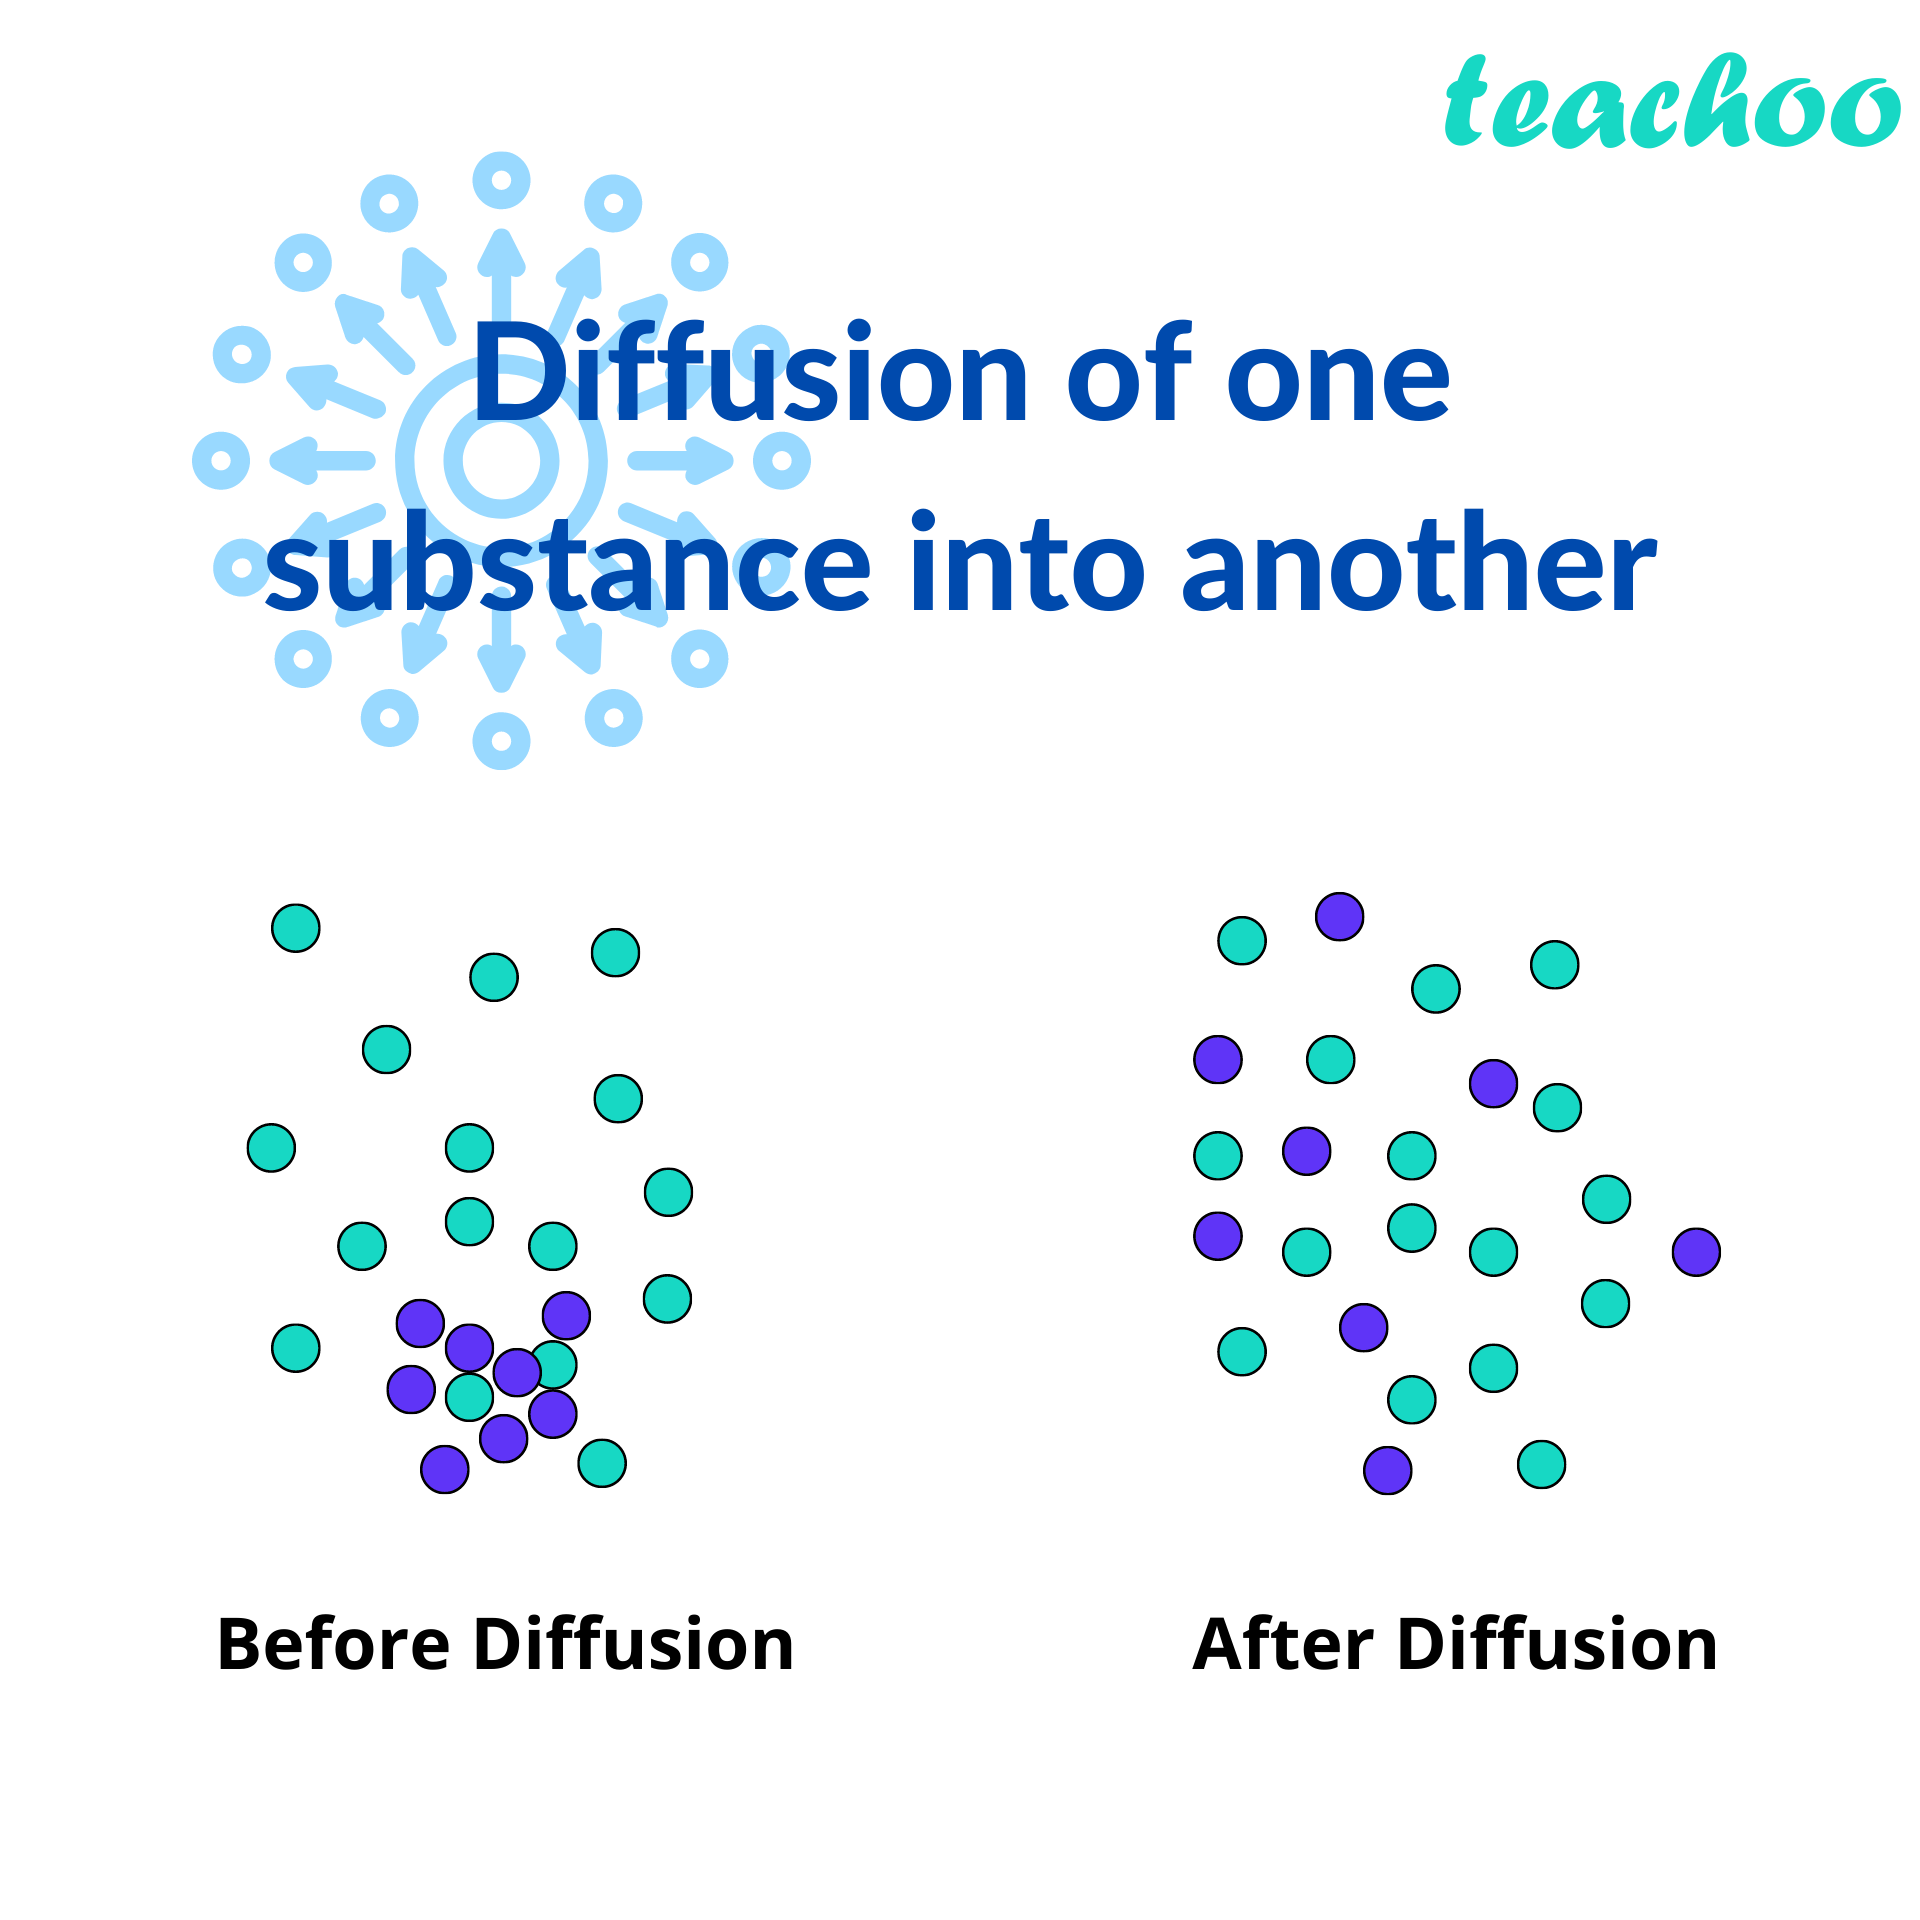 Diffusion of one substance into another - Teachoo.png